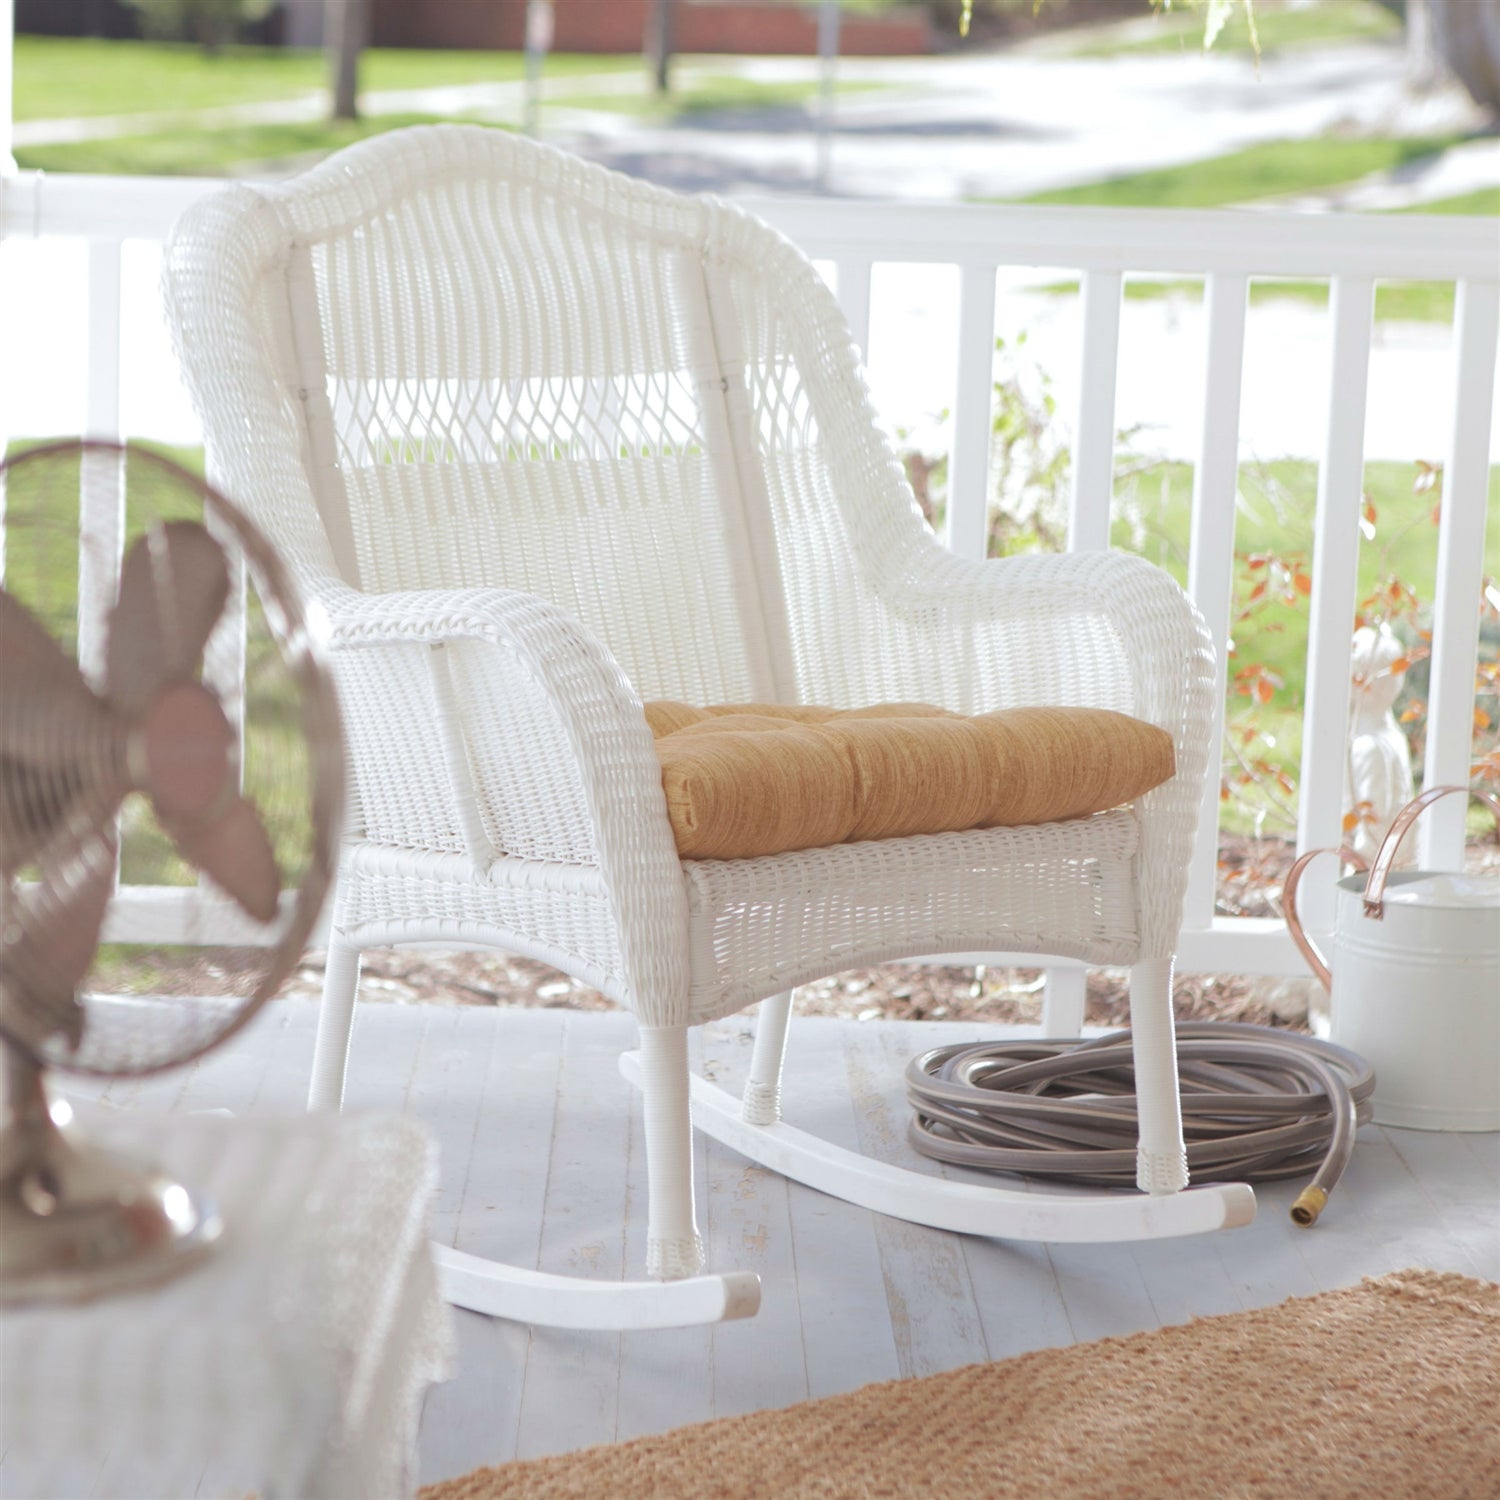 Charmant Indoor/Outdoor Patio Porch White Resin Wicker Rocking Chair